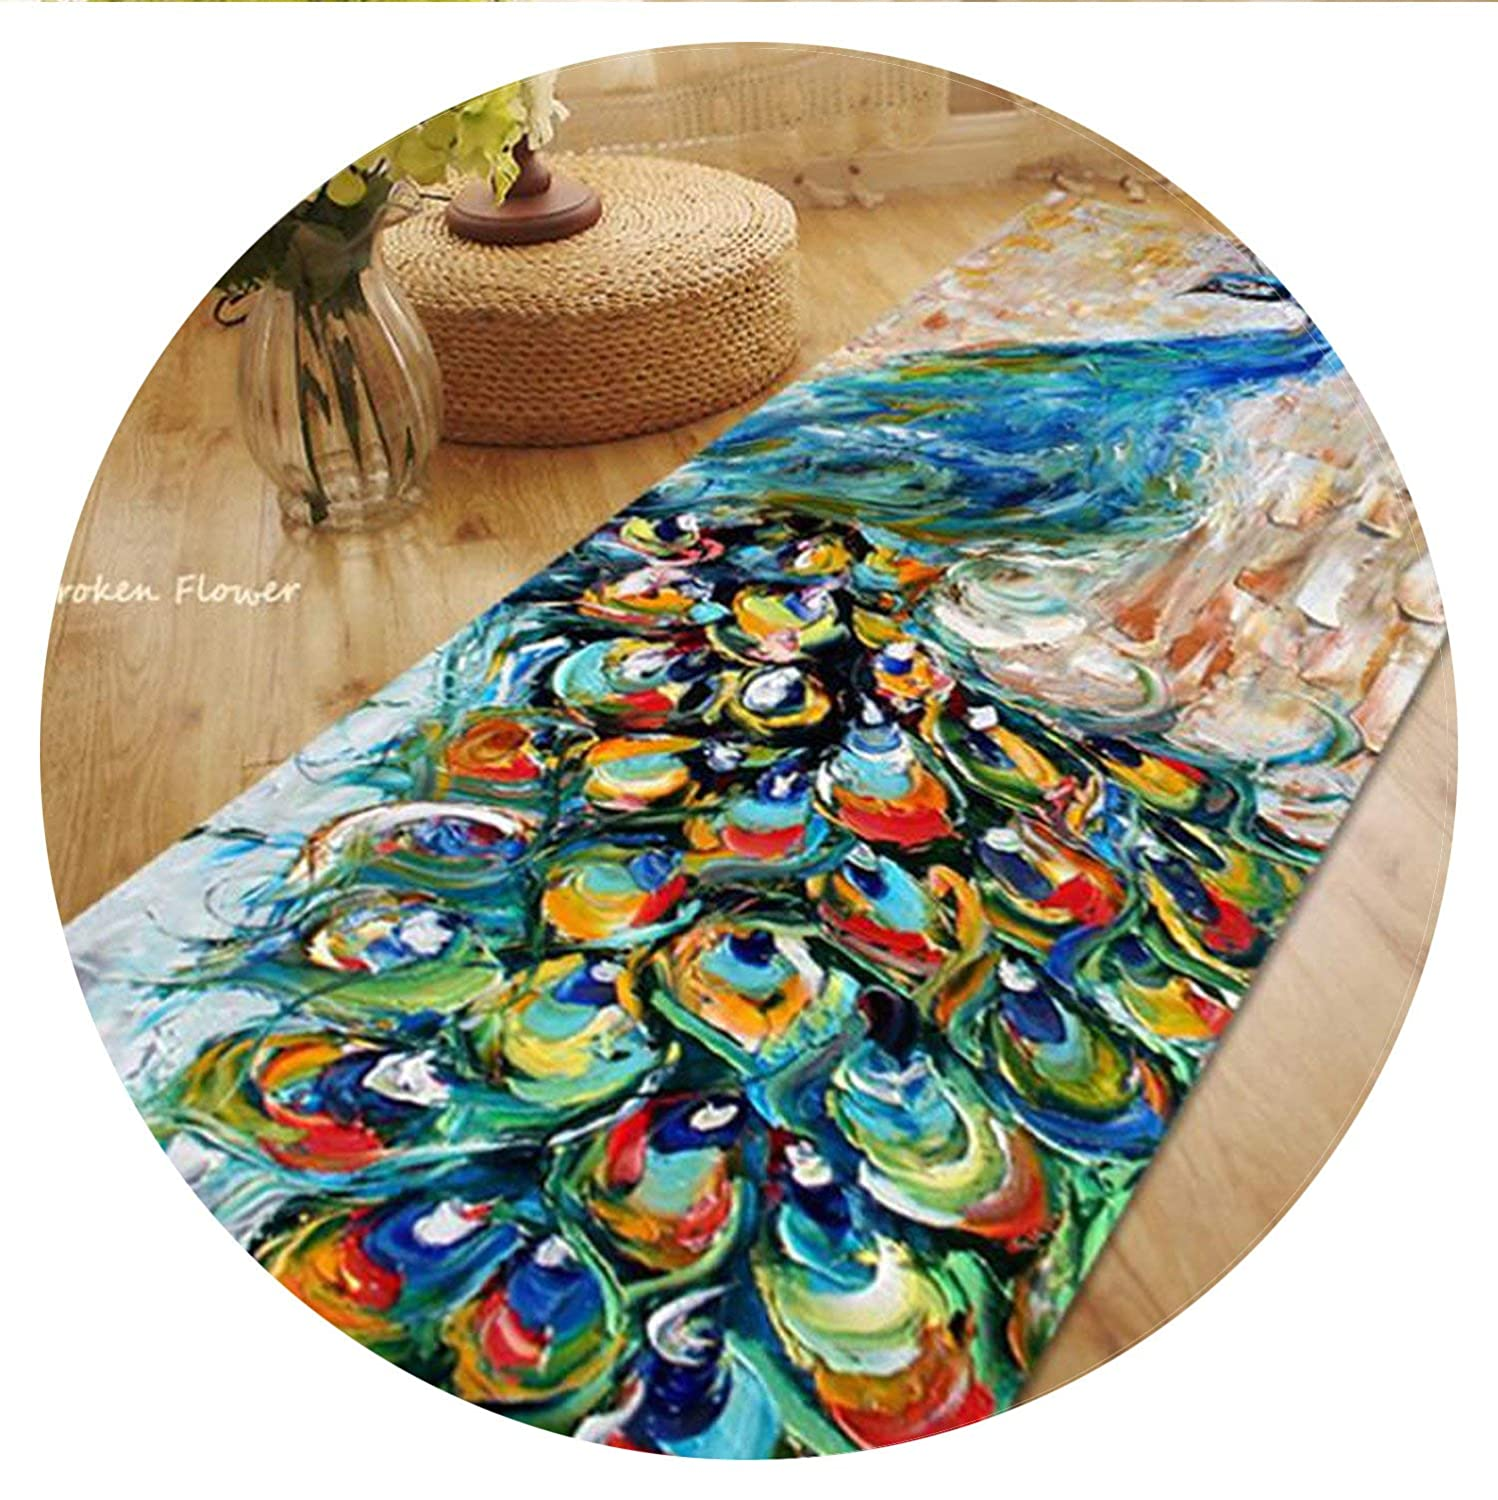 60X180CM Long Carpets for Bedroom Living Room Rugs and Carpets Soft Polyester Beautiful Peacock Kitchen Mat/Bath Mat,Multi,50cmx150cm